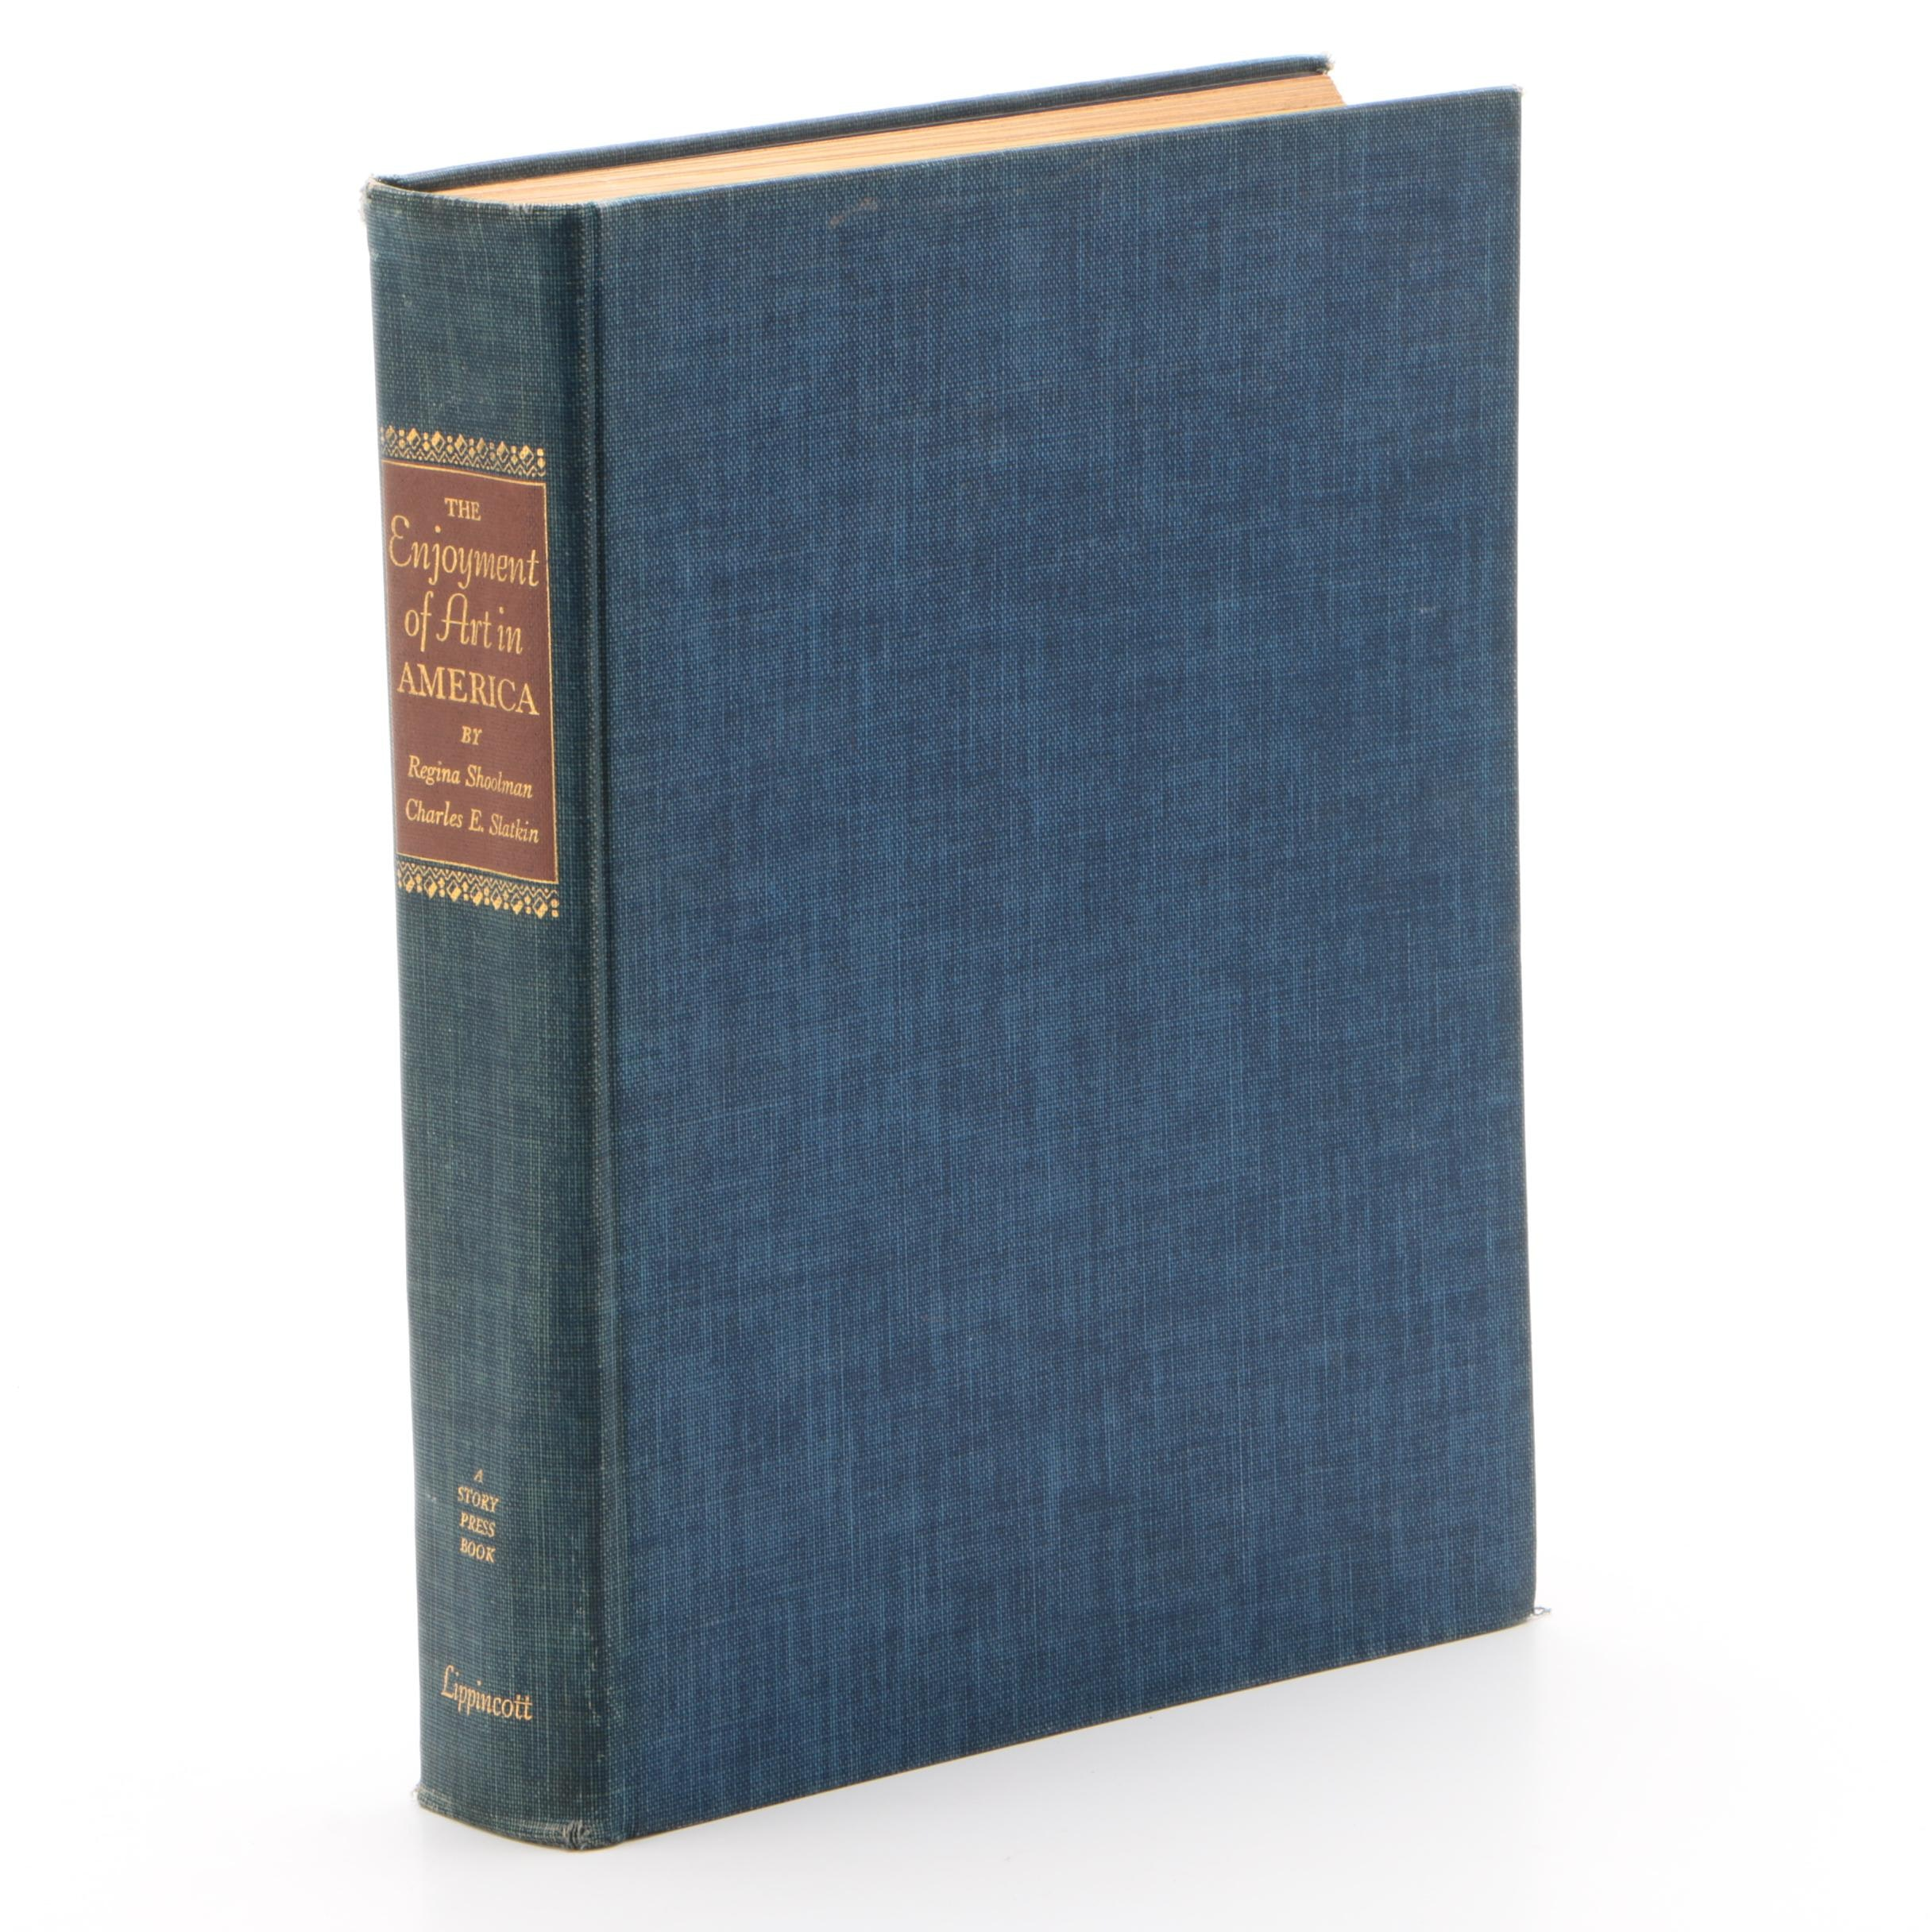 """First Edition Book """"The Enjoyment of Art in America"""""""